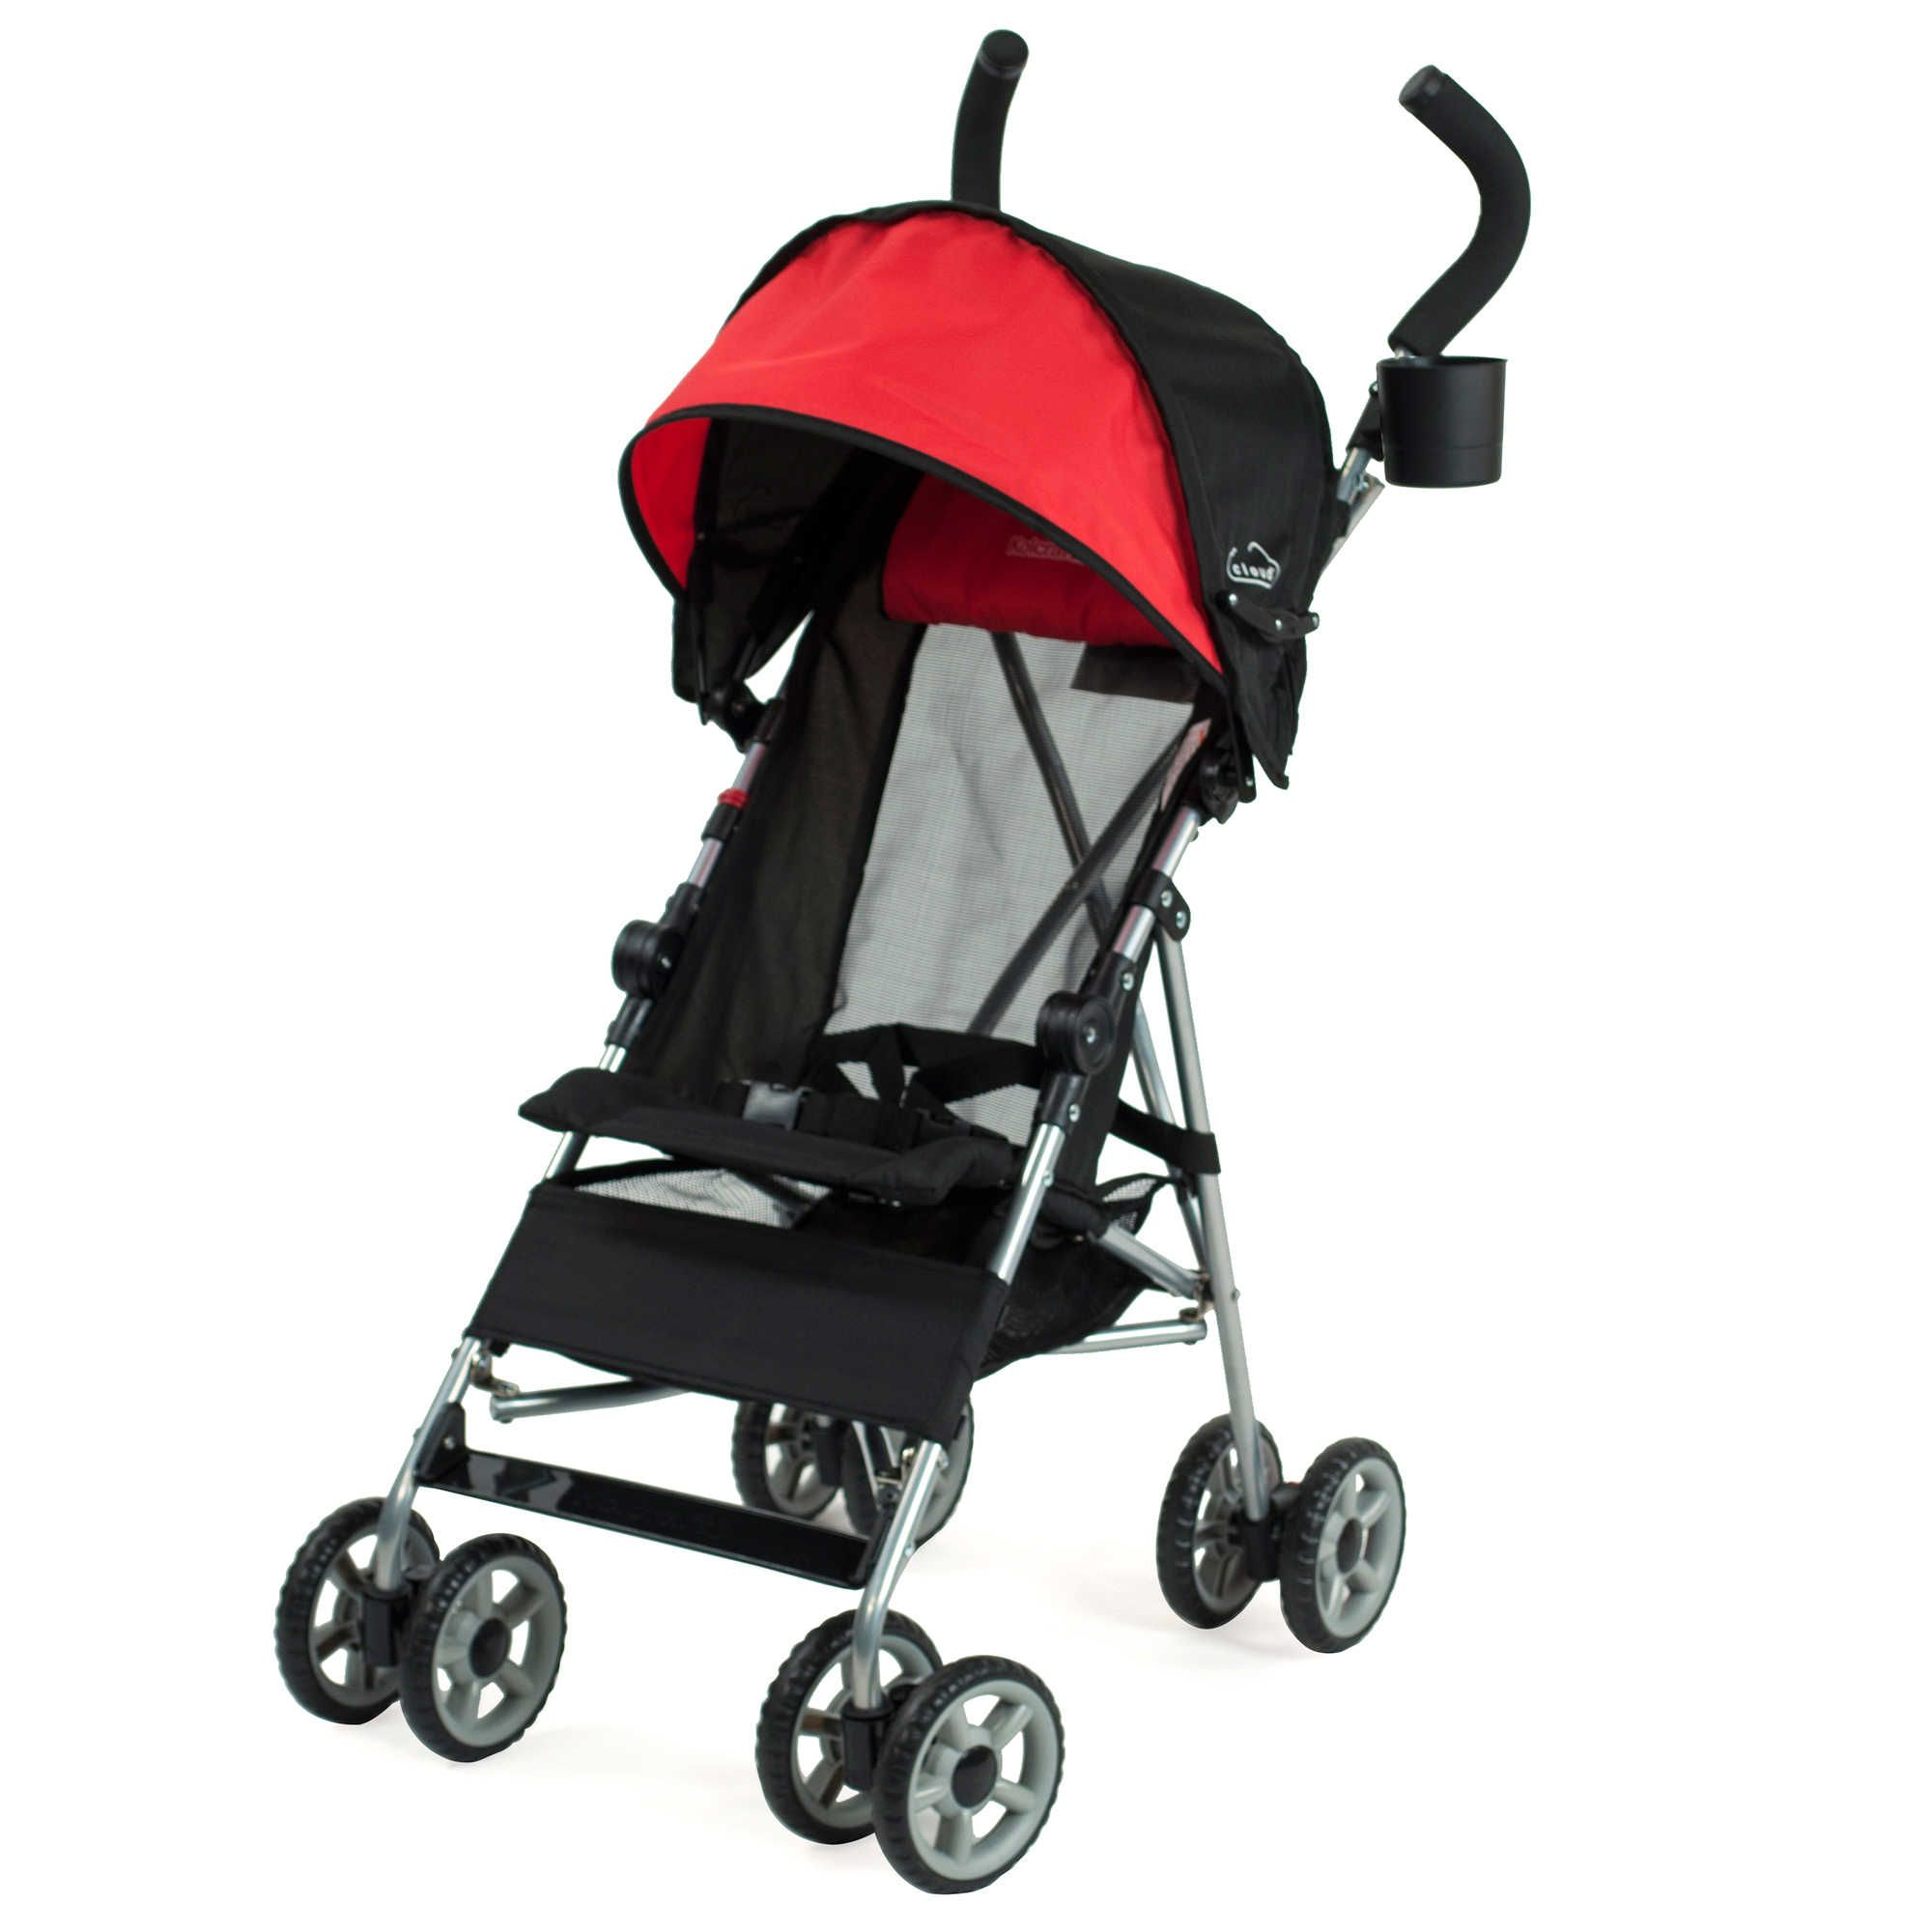 13 Best Umbrella Stroller Reviews of 2018 Light Umbrella Strollers We Love